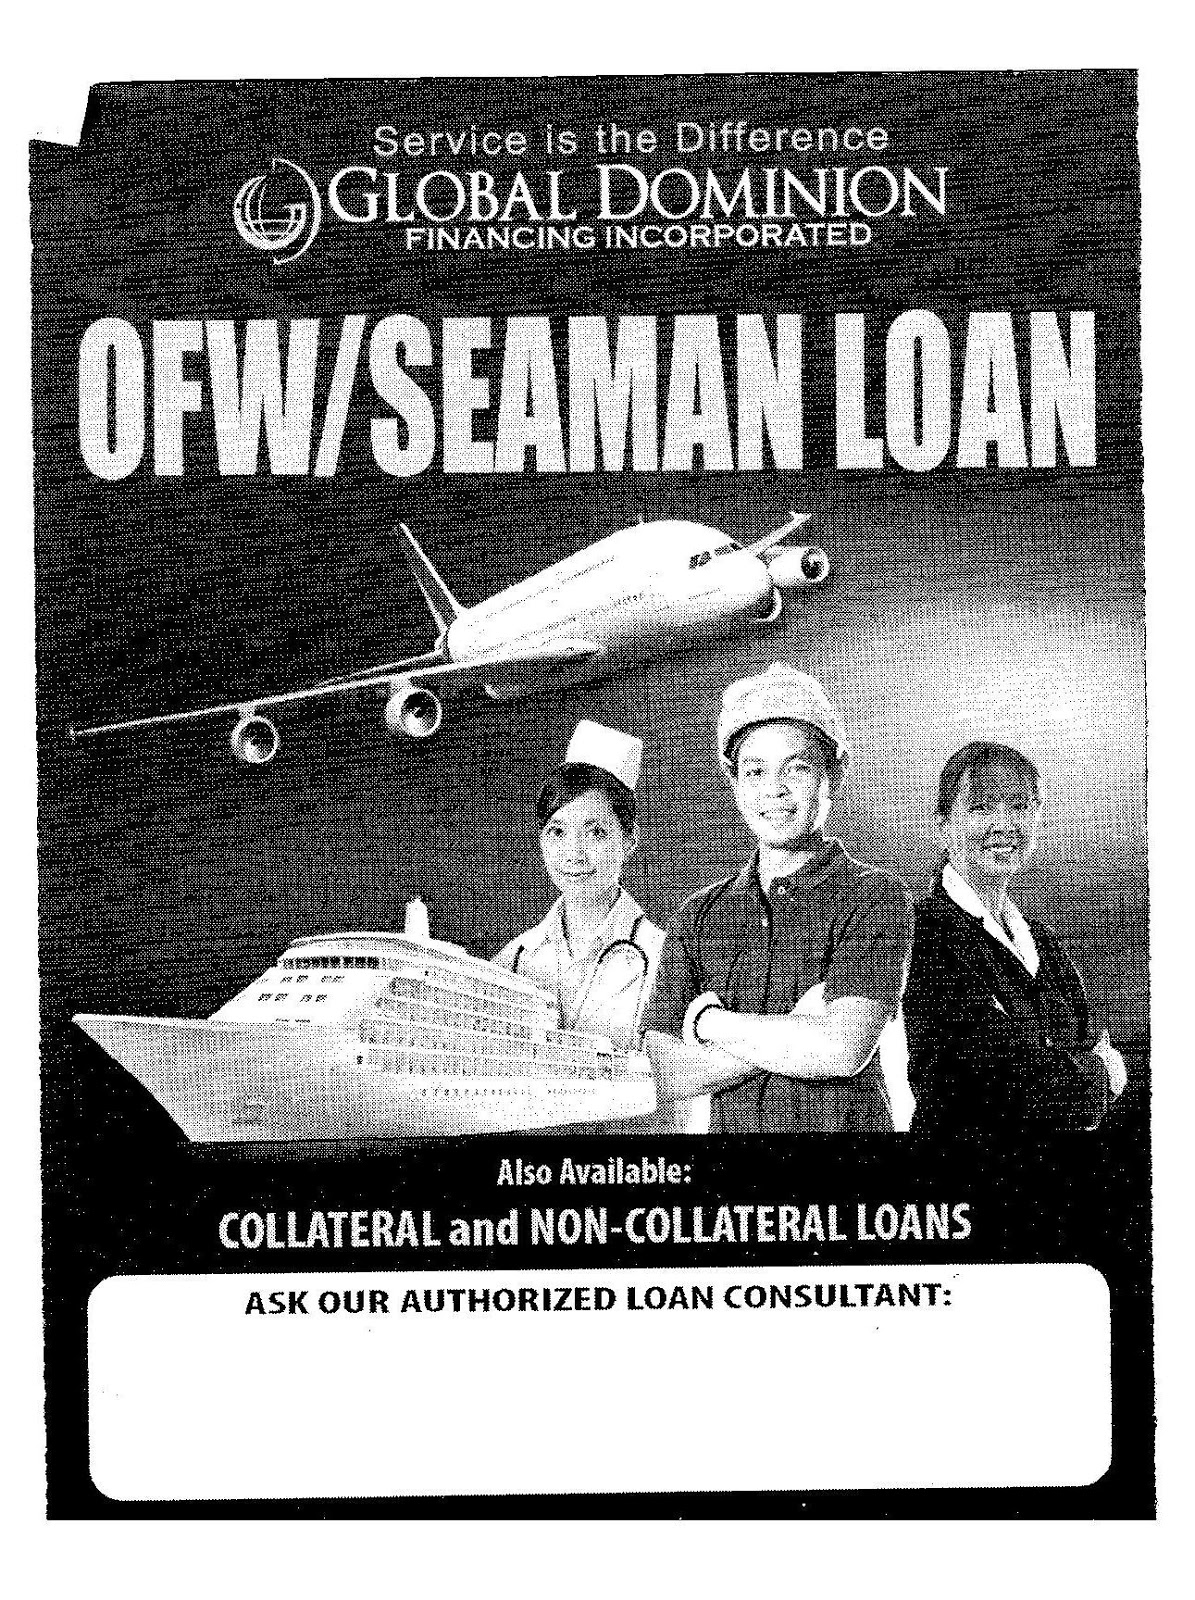 Personal Loans & House and Lot For Sale: OFW / Seamans Loan